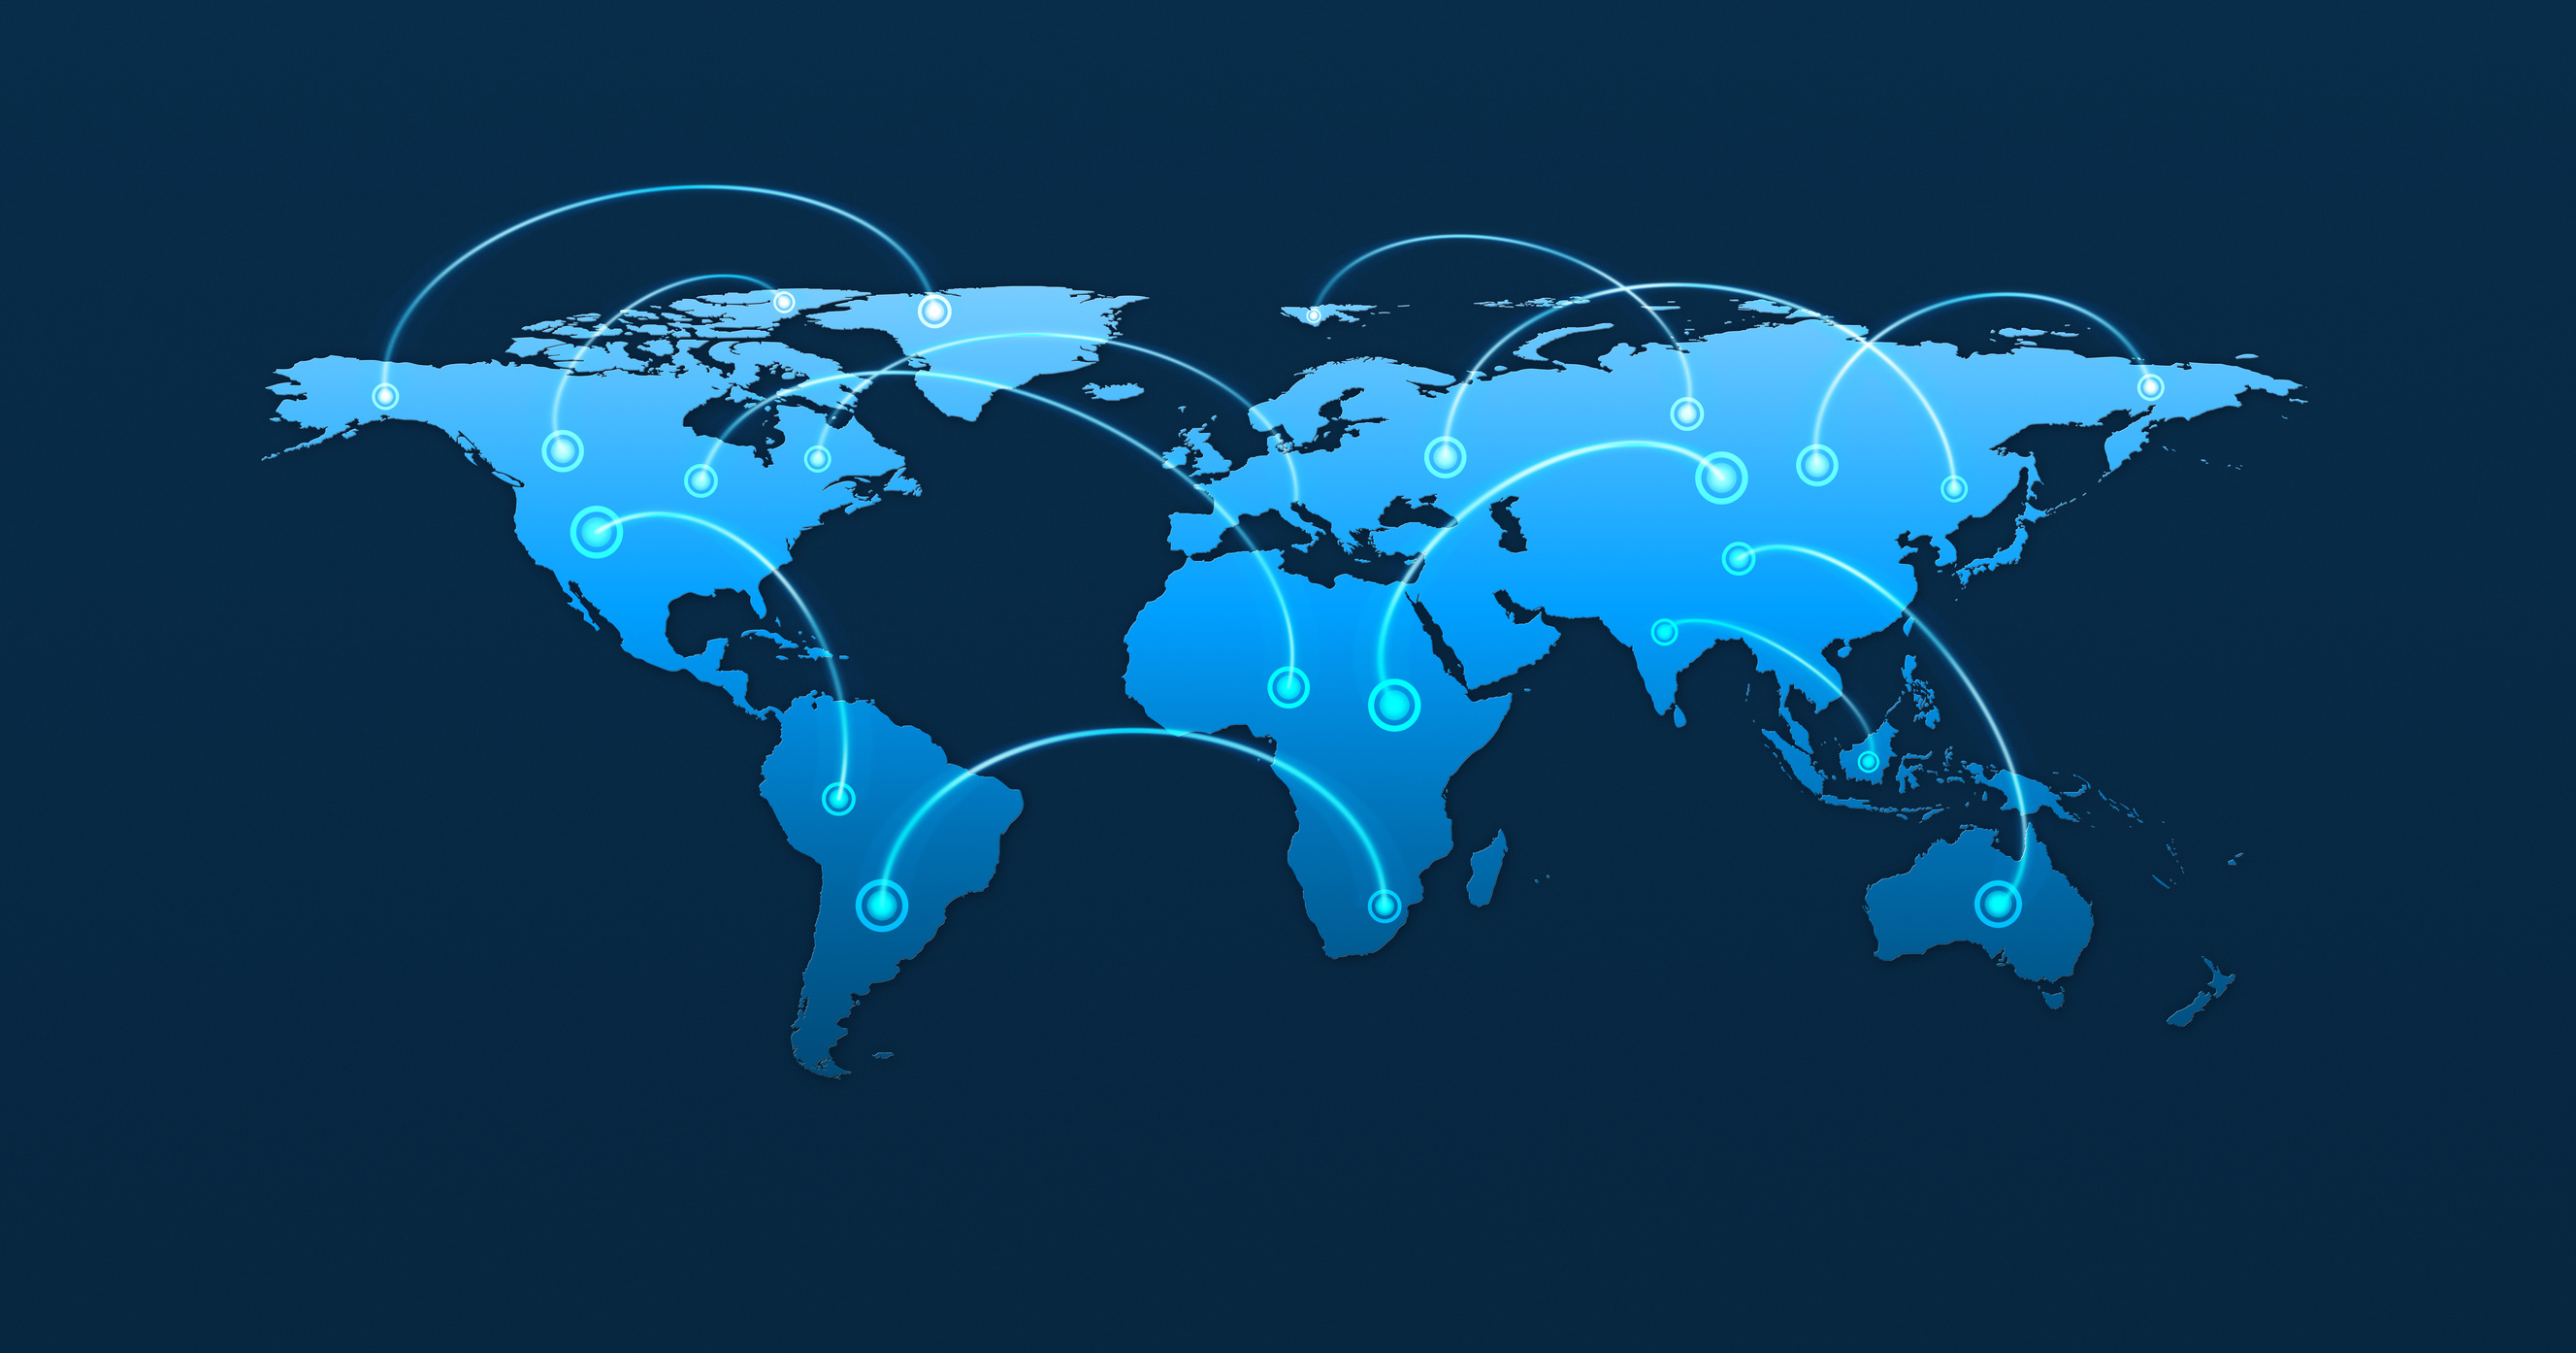 Global business connection concept, blue tone, Elements of this image furnished by NASA